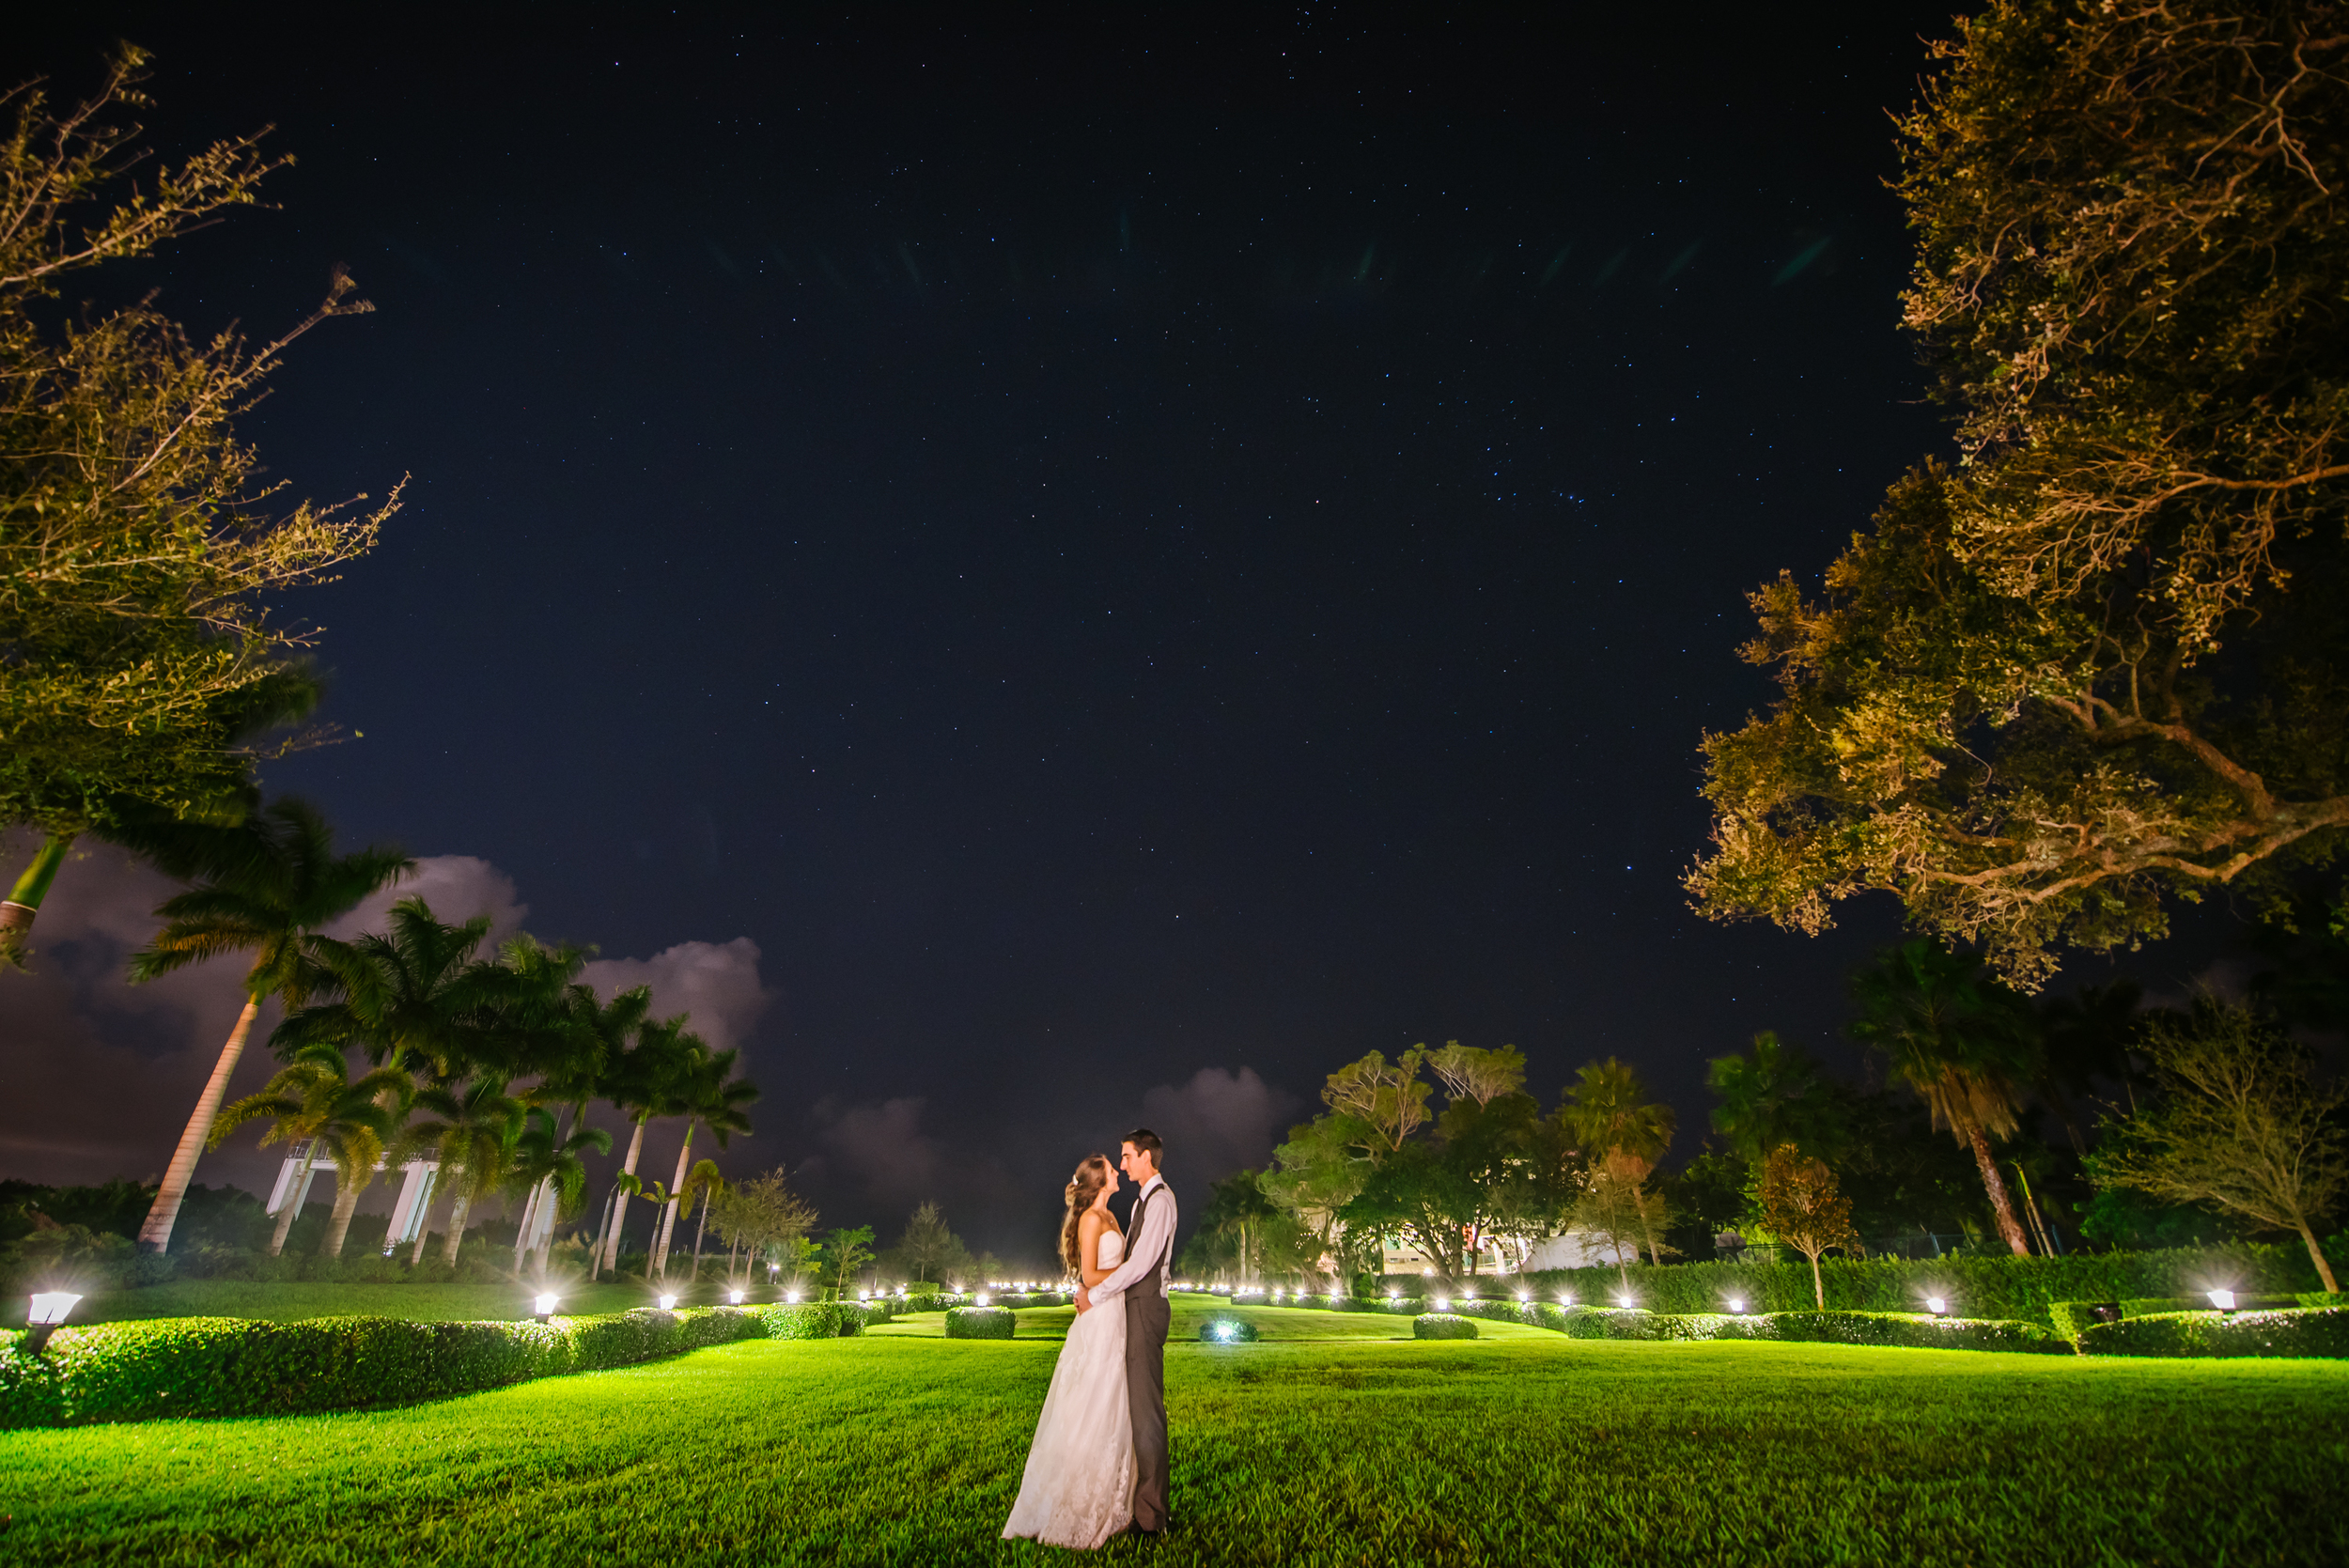 Just after Christmas I ventured down to Miami for Catherine and Trey's epic wedding day. Catherine is the sister of Emily, one of my very first brides! This ling exposure on the lawn of their incredible venue is of of my new all time favs.